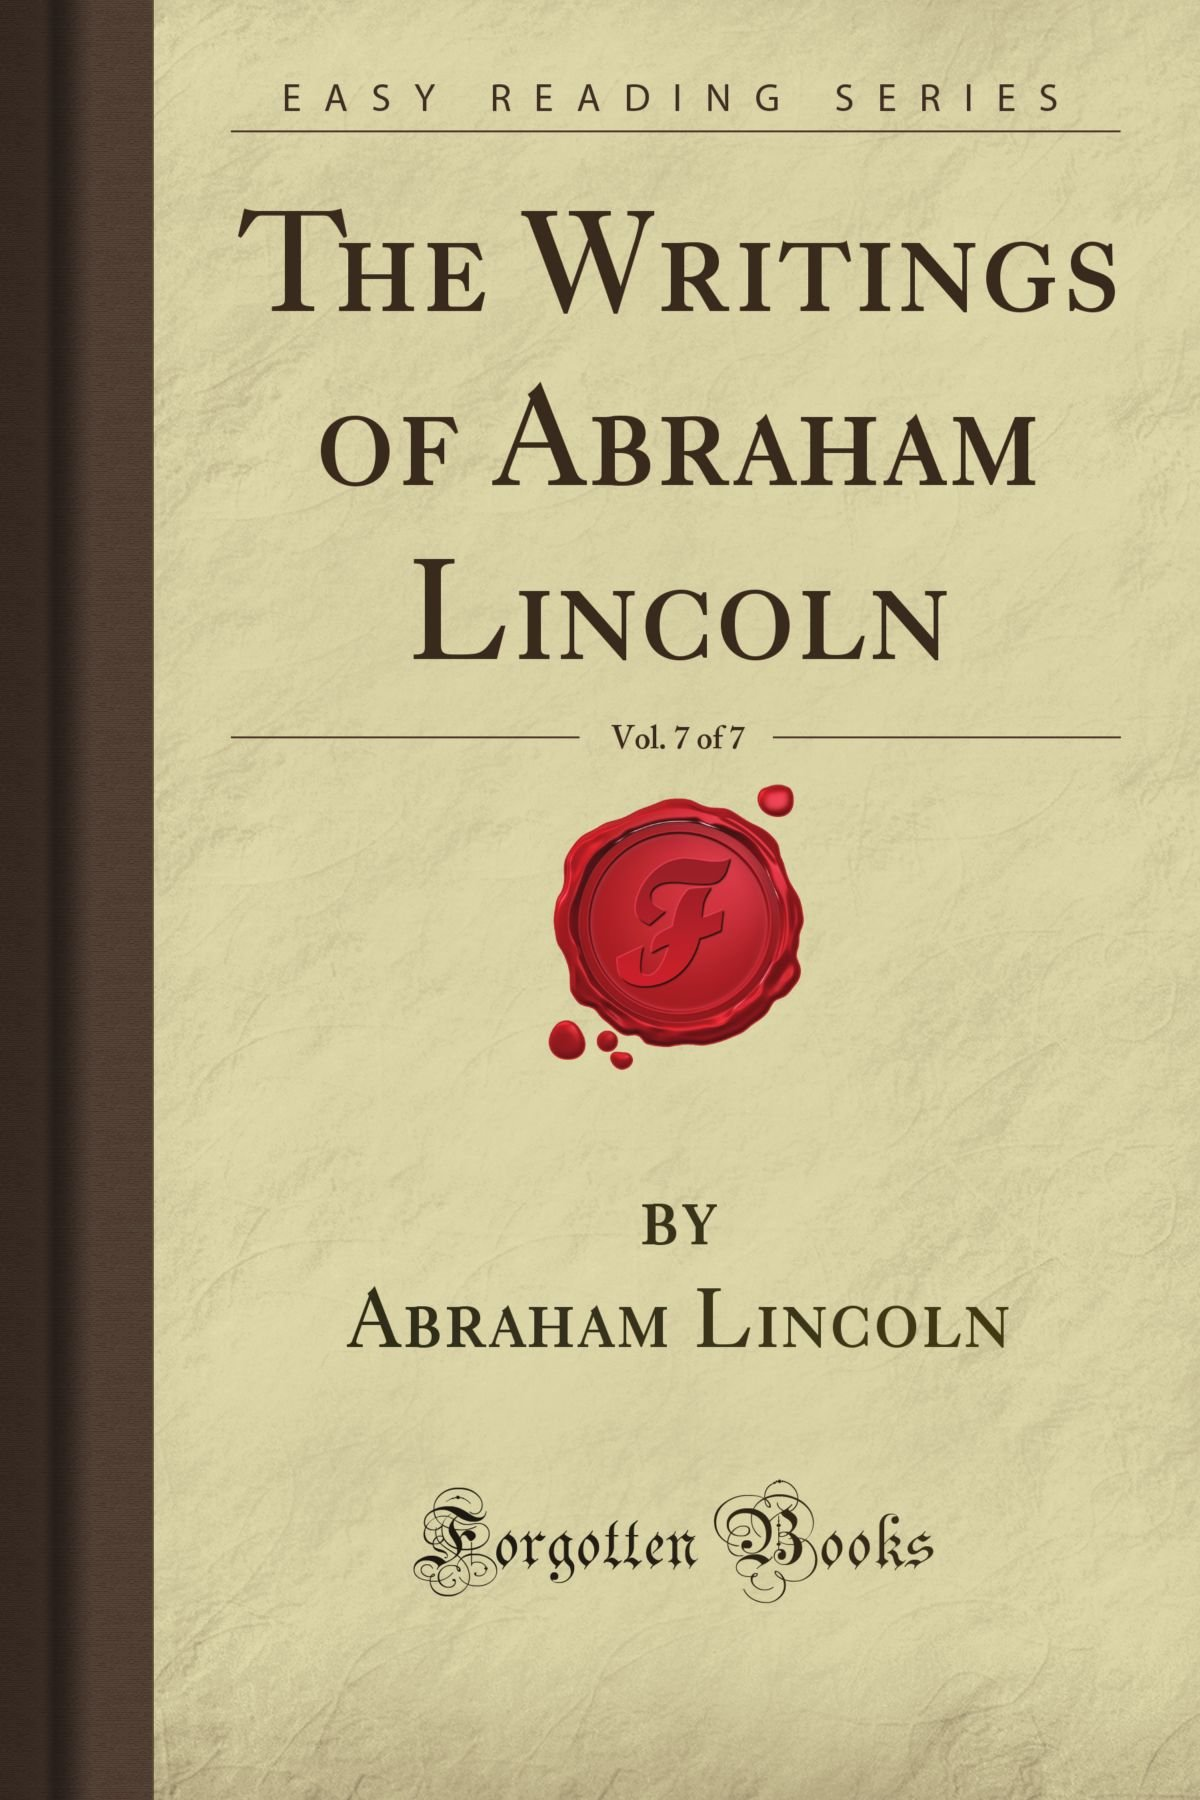 Read Online The Writings of Abraham Lincoln, Vol. 7 of 7 (Forgotten Books) ebook